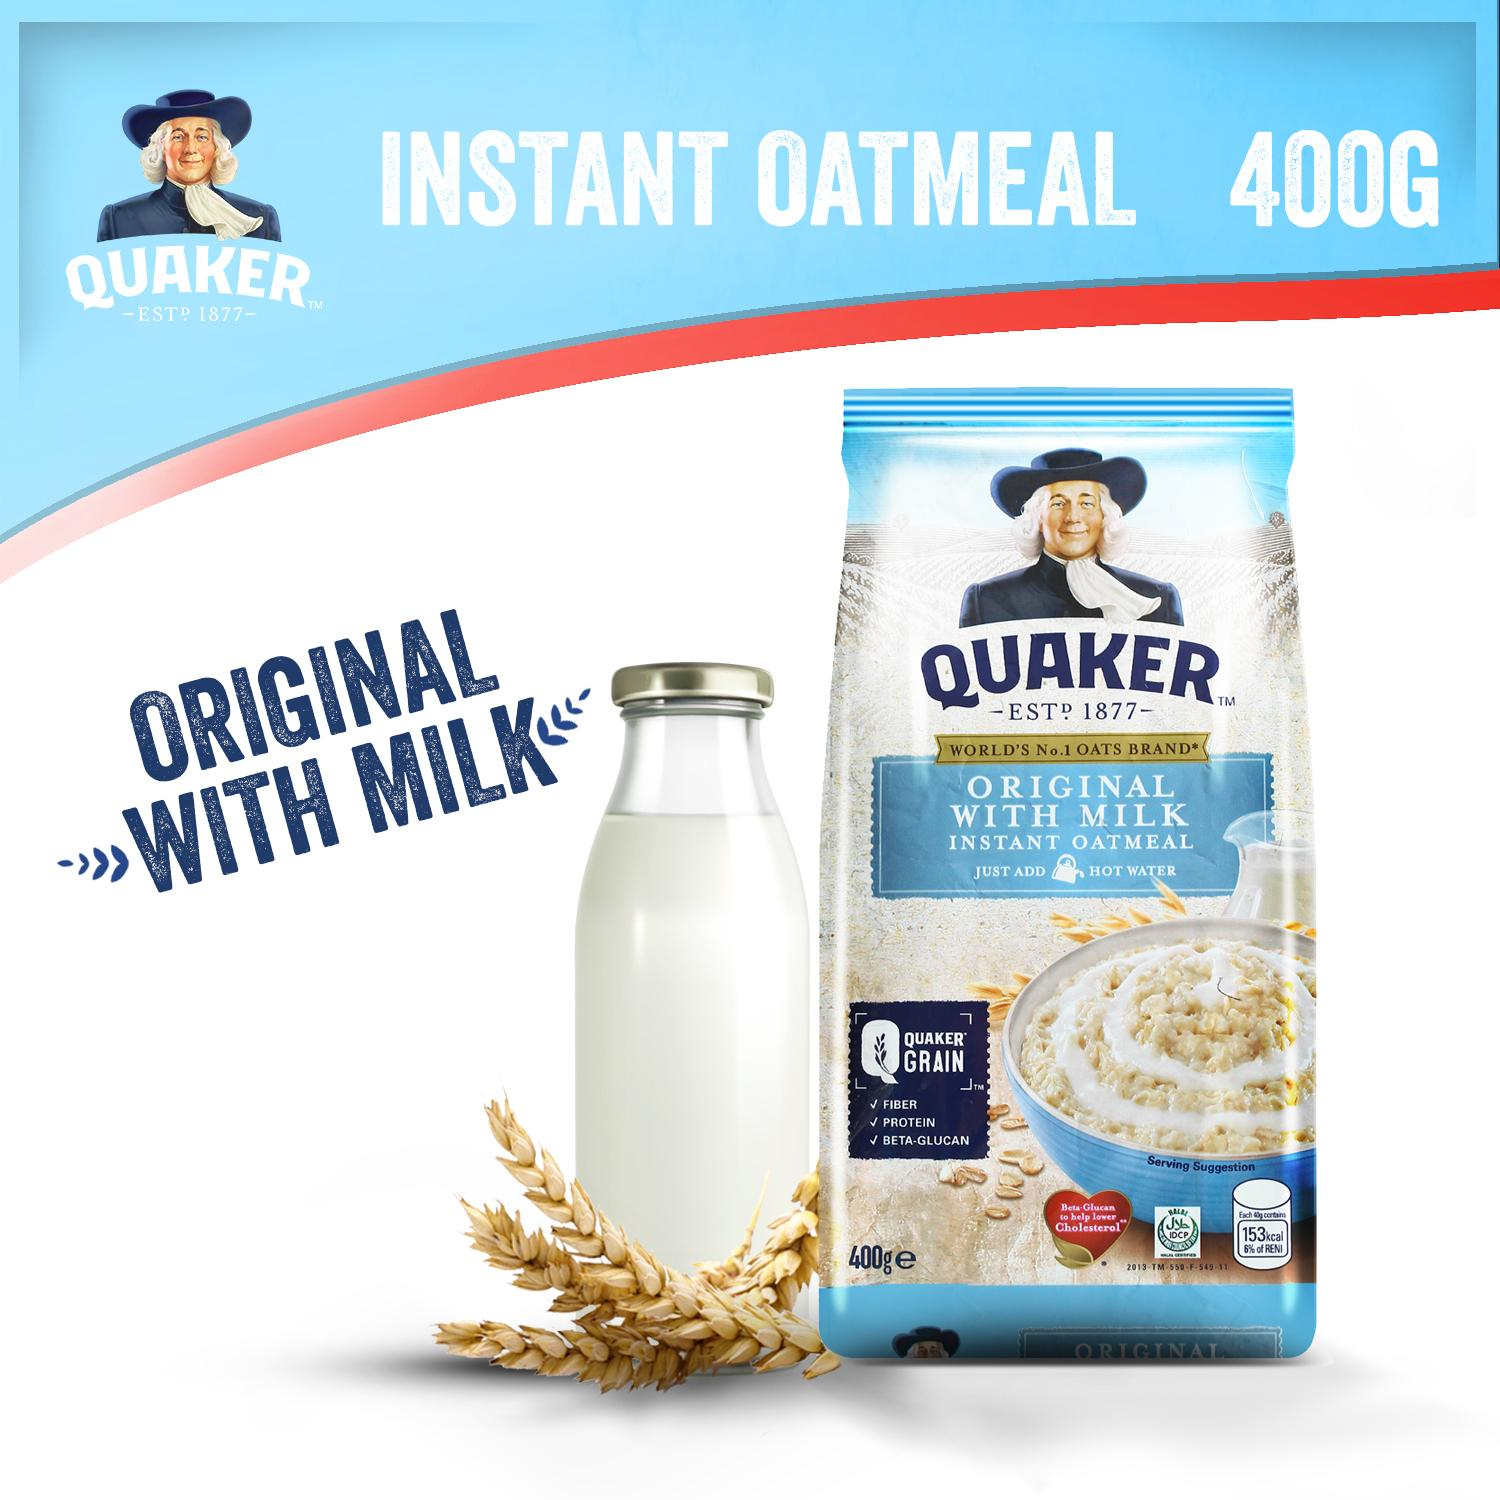 Quaker Instant Oatmeal Original With Milk Flavor 400g By Quaker.